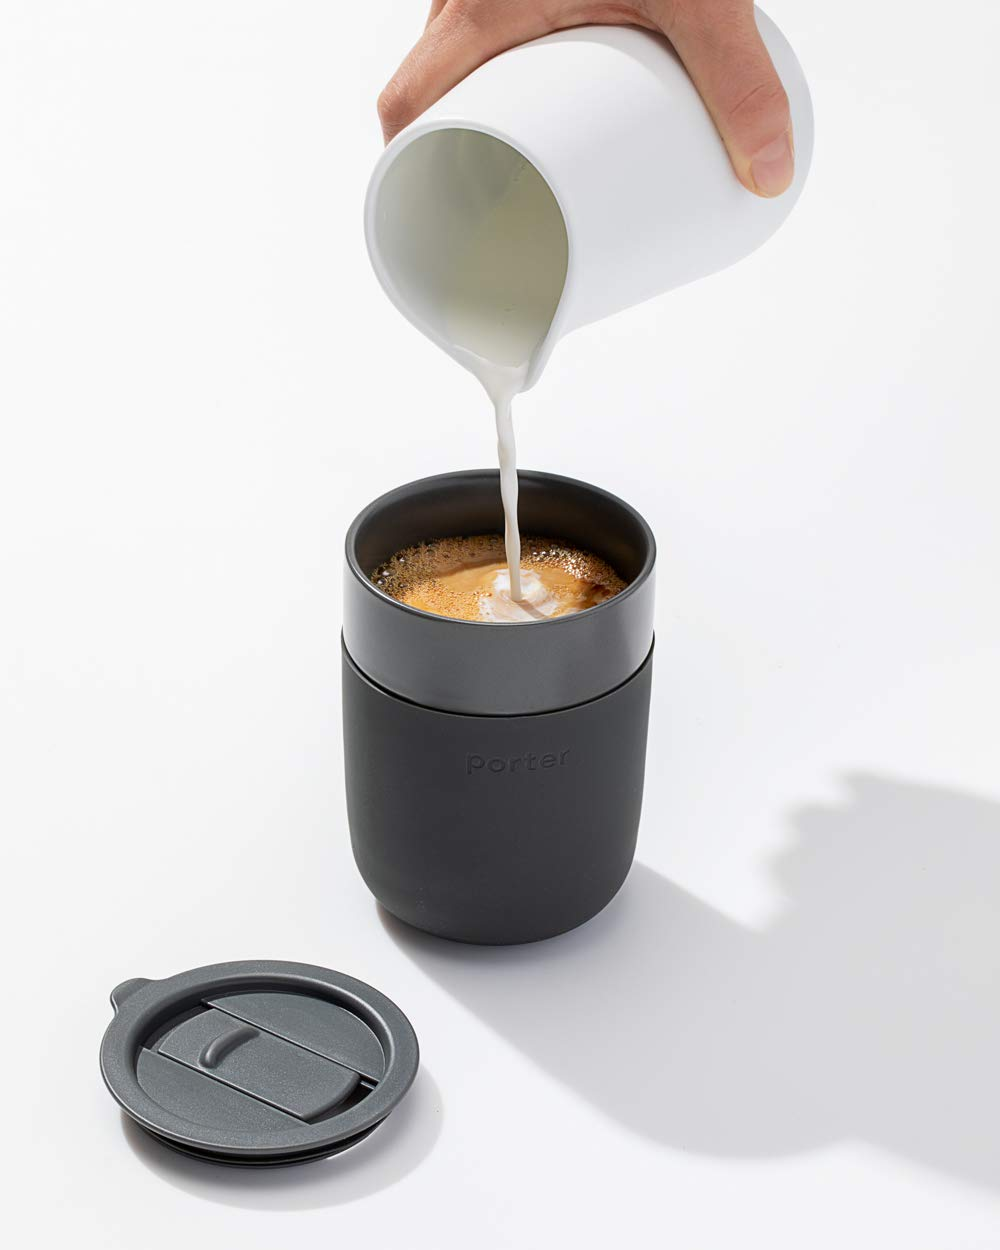 Porter Ceramic Mug with Silicone Sleeve, 12 oz - A great, stylish option for on the go coffee. Offered in 5 colors.